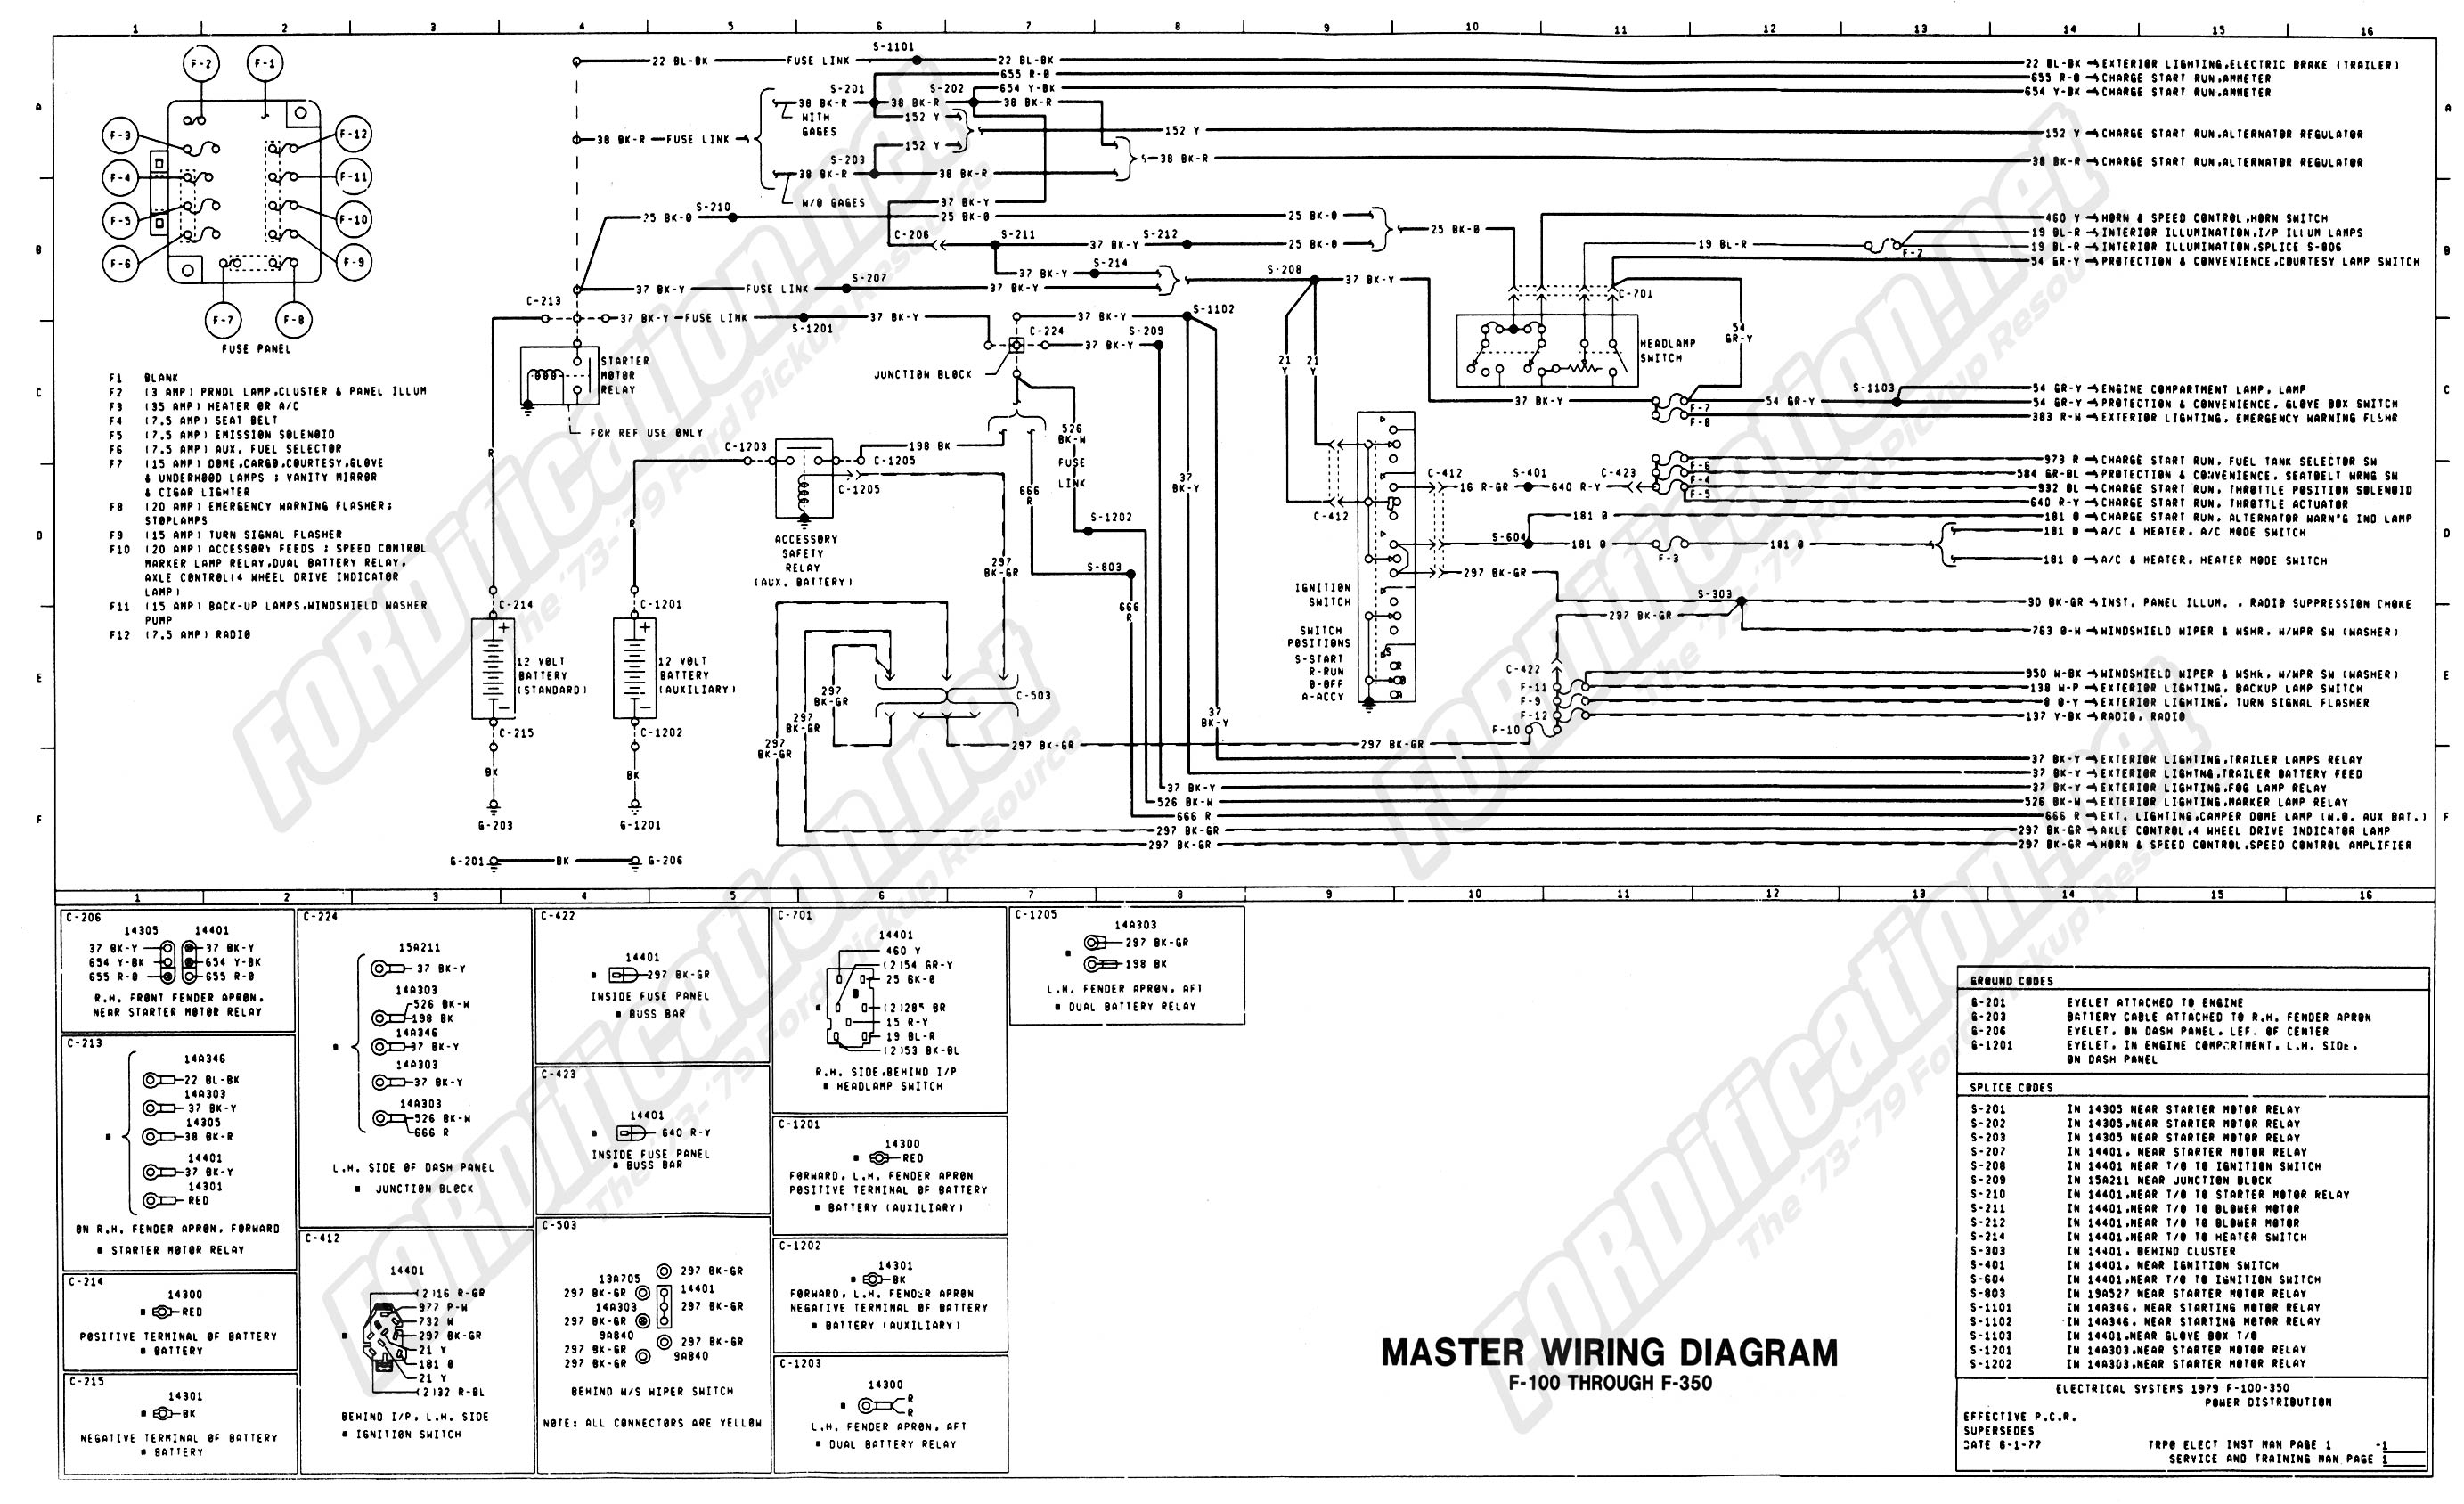 2006 ford f150 wiring diagram Download-Wiring Diagram 1979 Ford F150 Ignition Switch And Ford Ignition 14-s